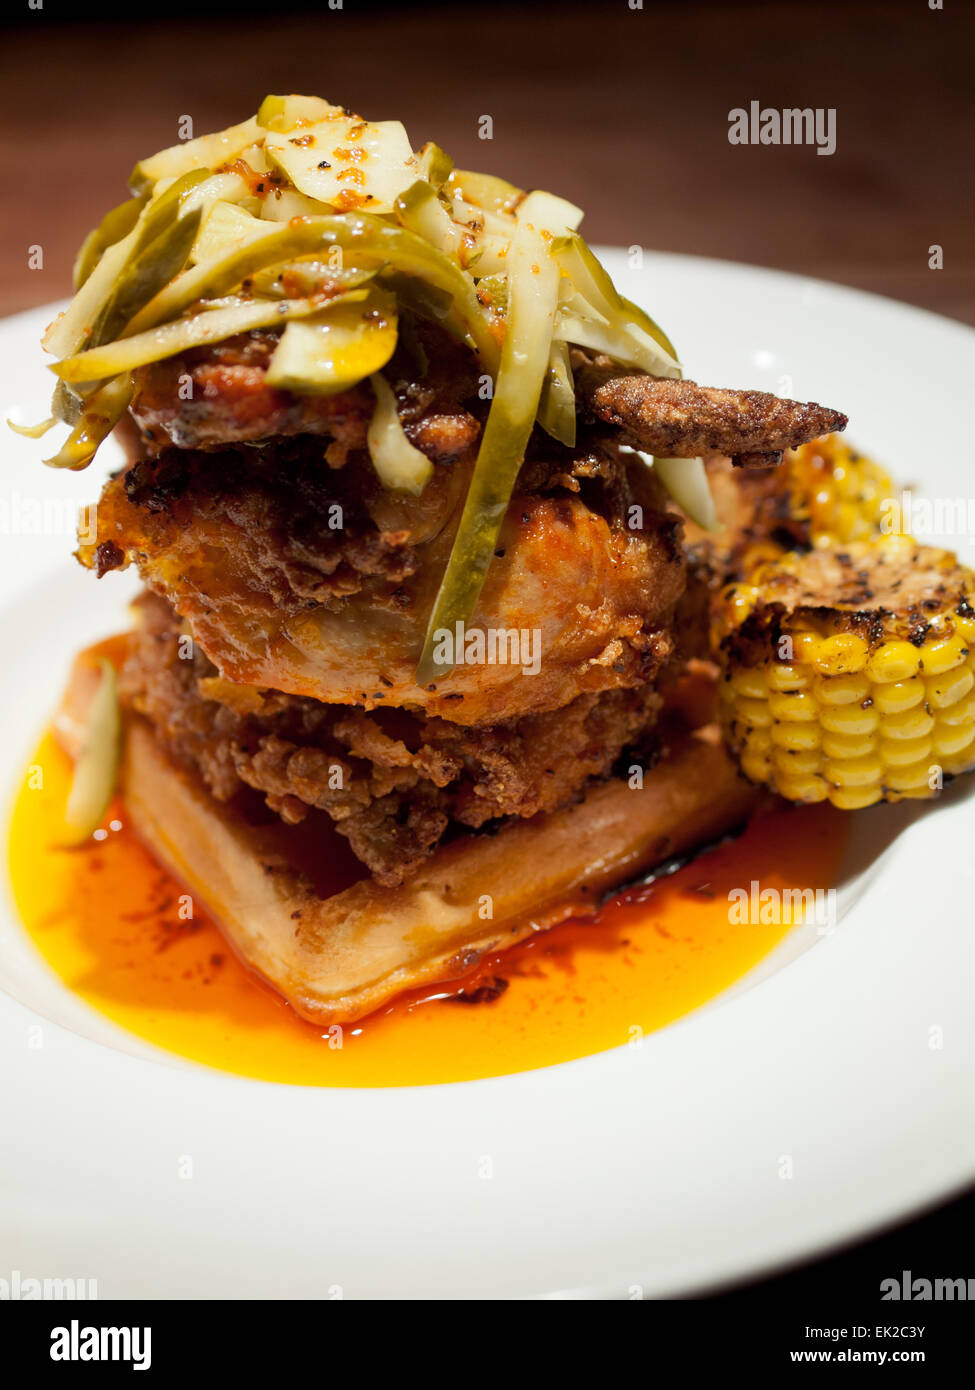 Soul food: a gourmet chicken and waffle dish topped with dill pickles from Bon Temps Cafe in Saskatoon, Saskatchewan, - Stock Image